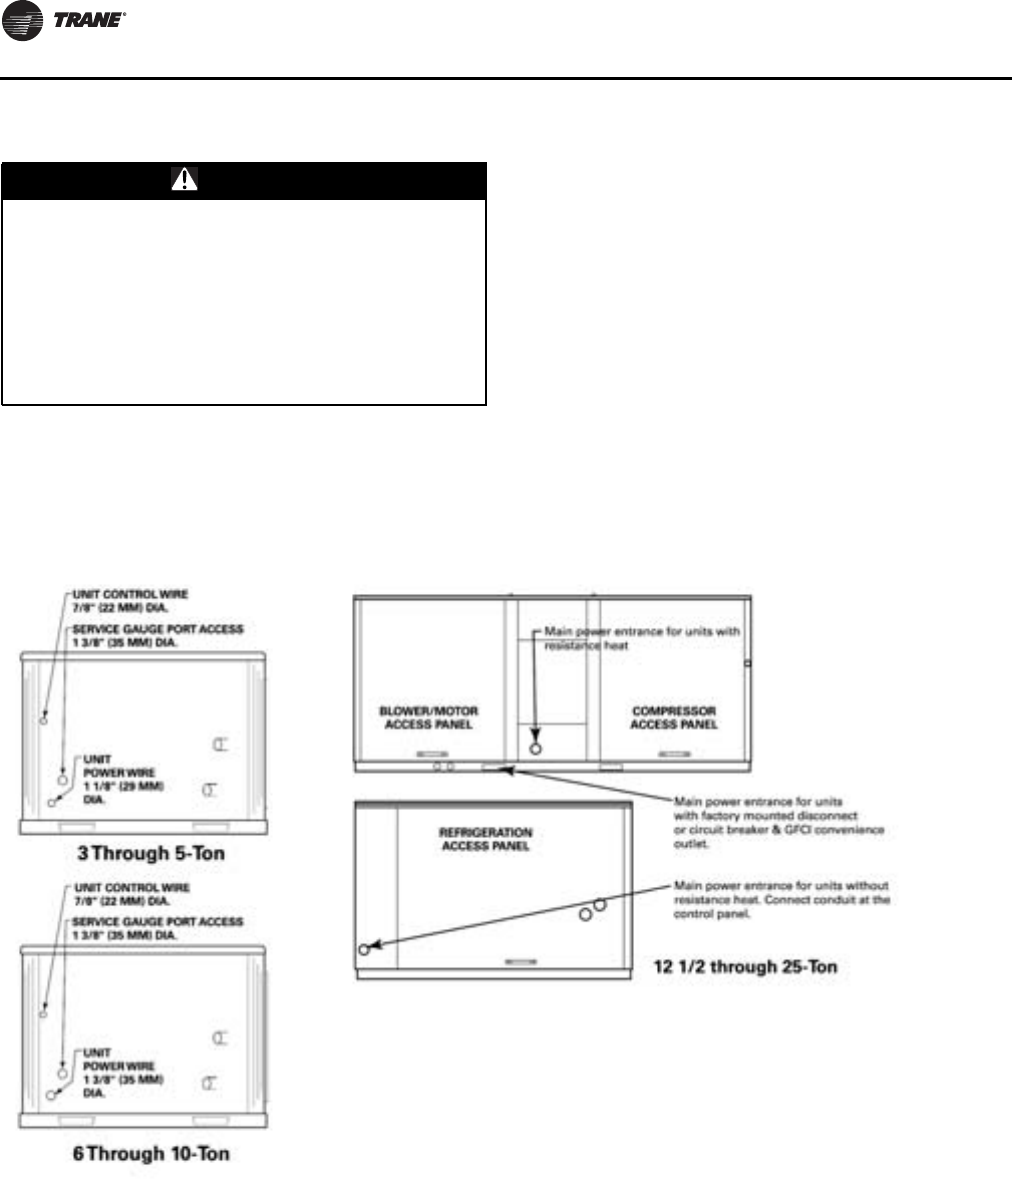 Trane Rooftop Wshp Installation And Maintenance Manual Compressor Wiring Diagram